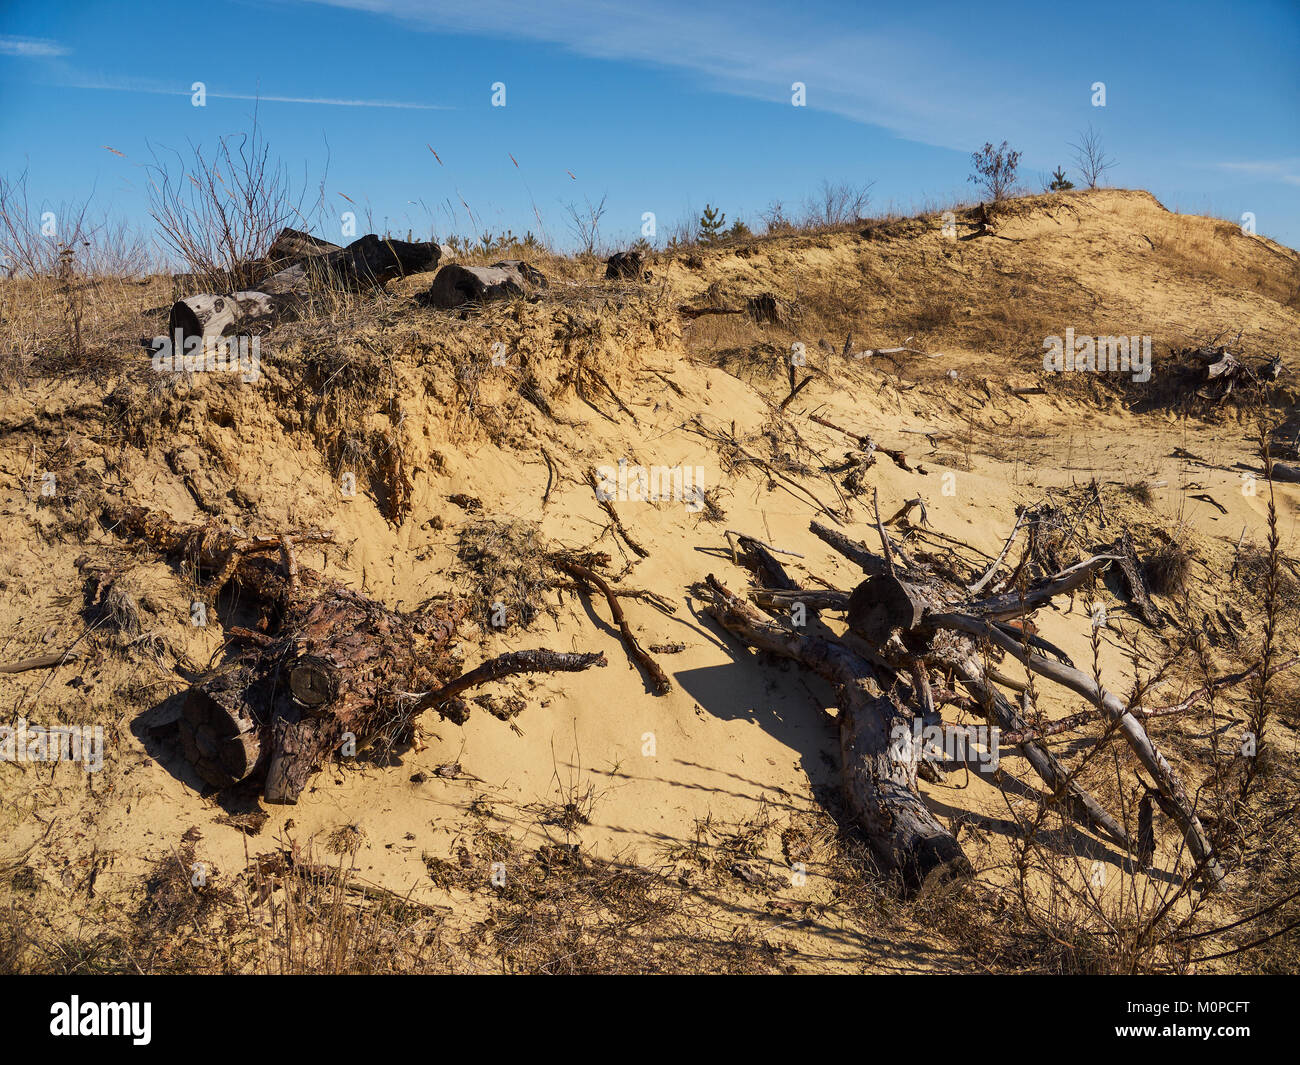 Dry grass and remains of spruces on the sand landslip under the blue sky - Stock Image